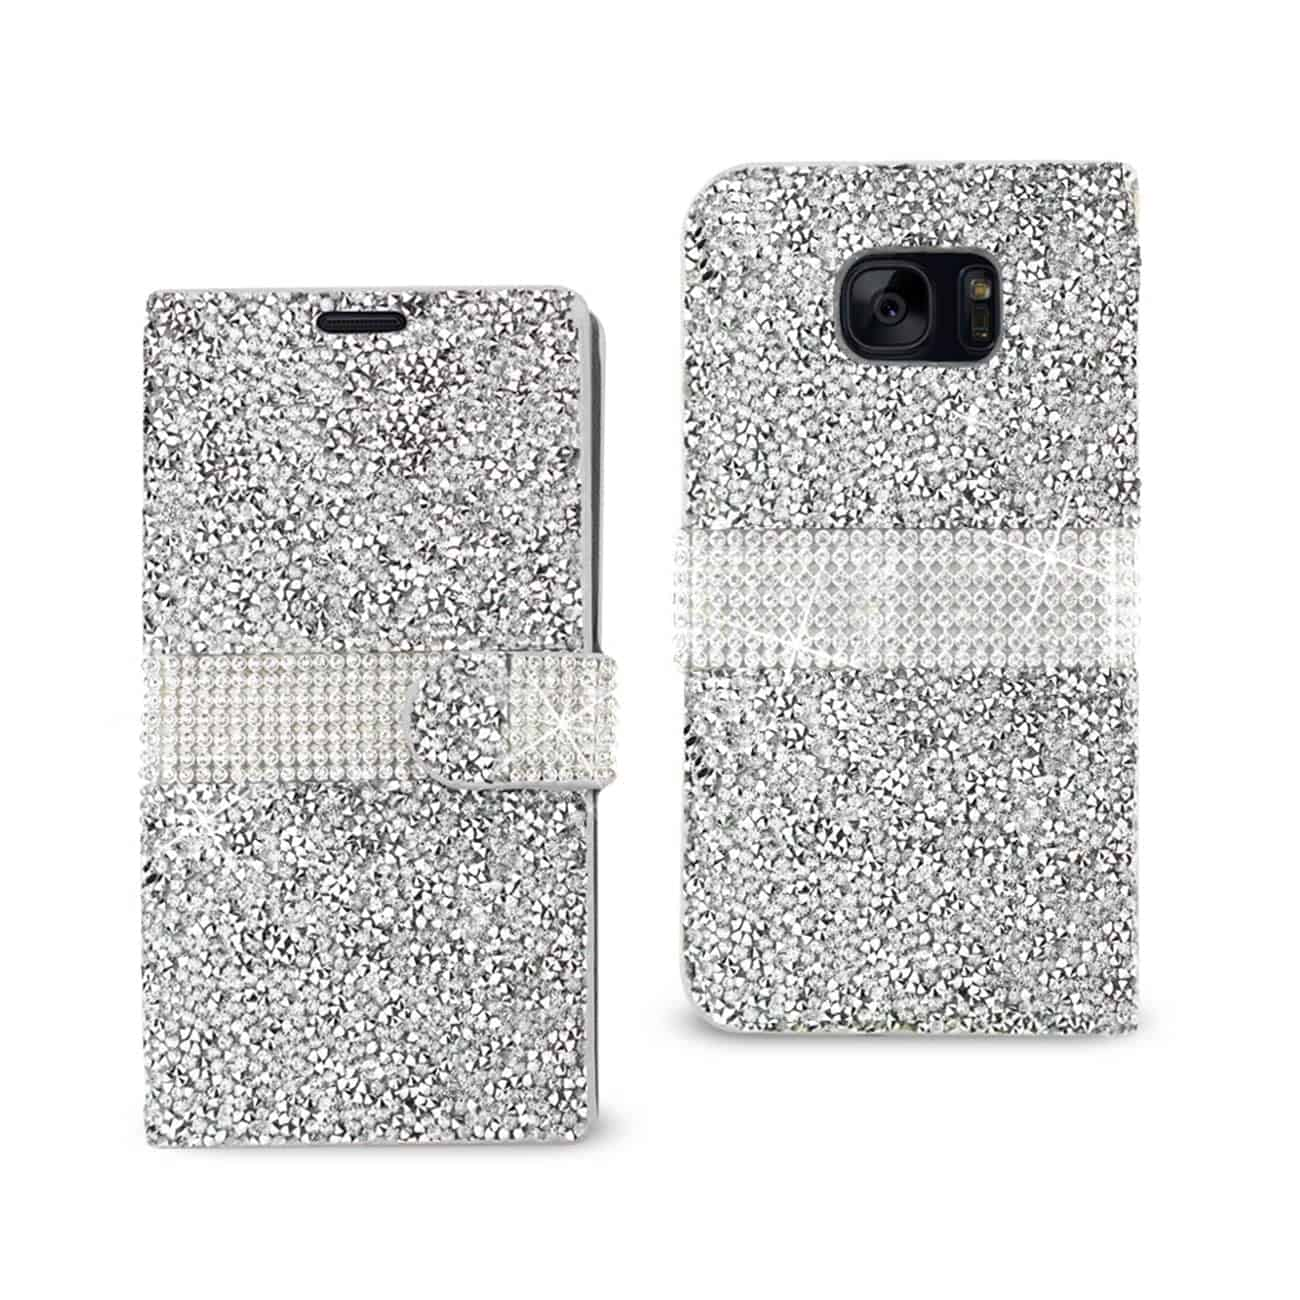 SAMSUNG GALAXY S7 EDGE JEWELRY RHINESTONE WALLET CASE IN SILVER